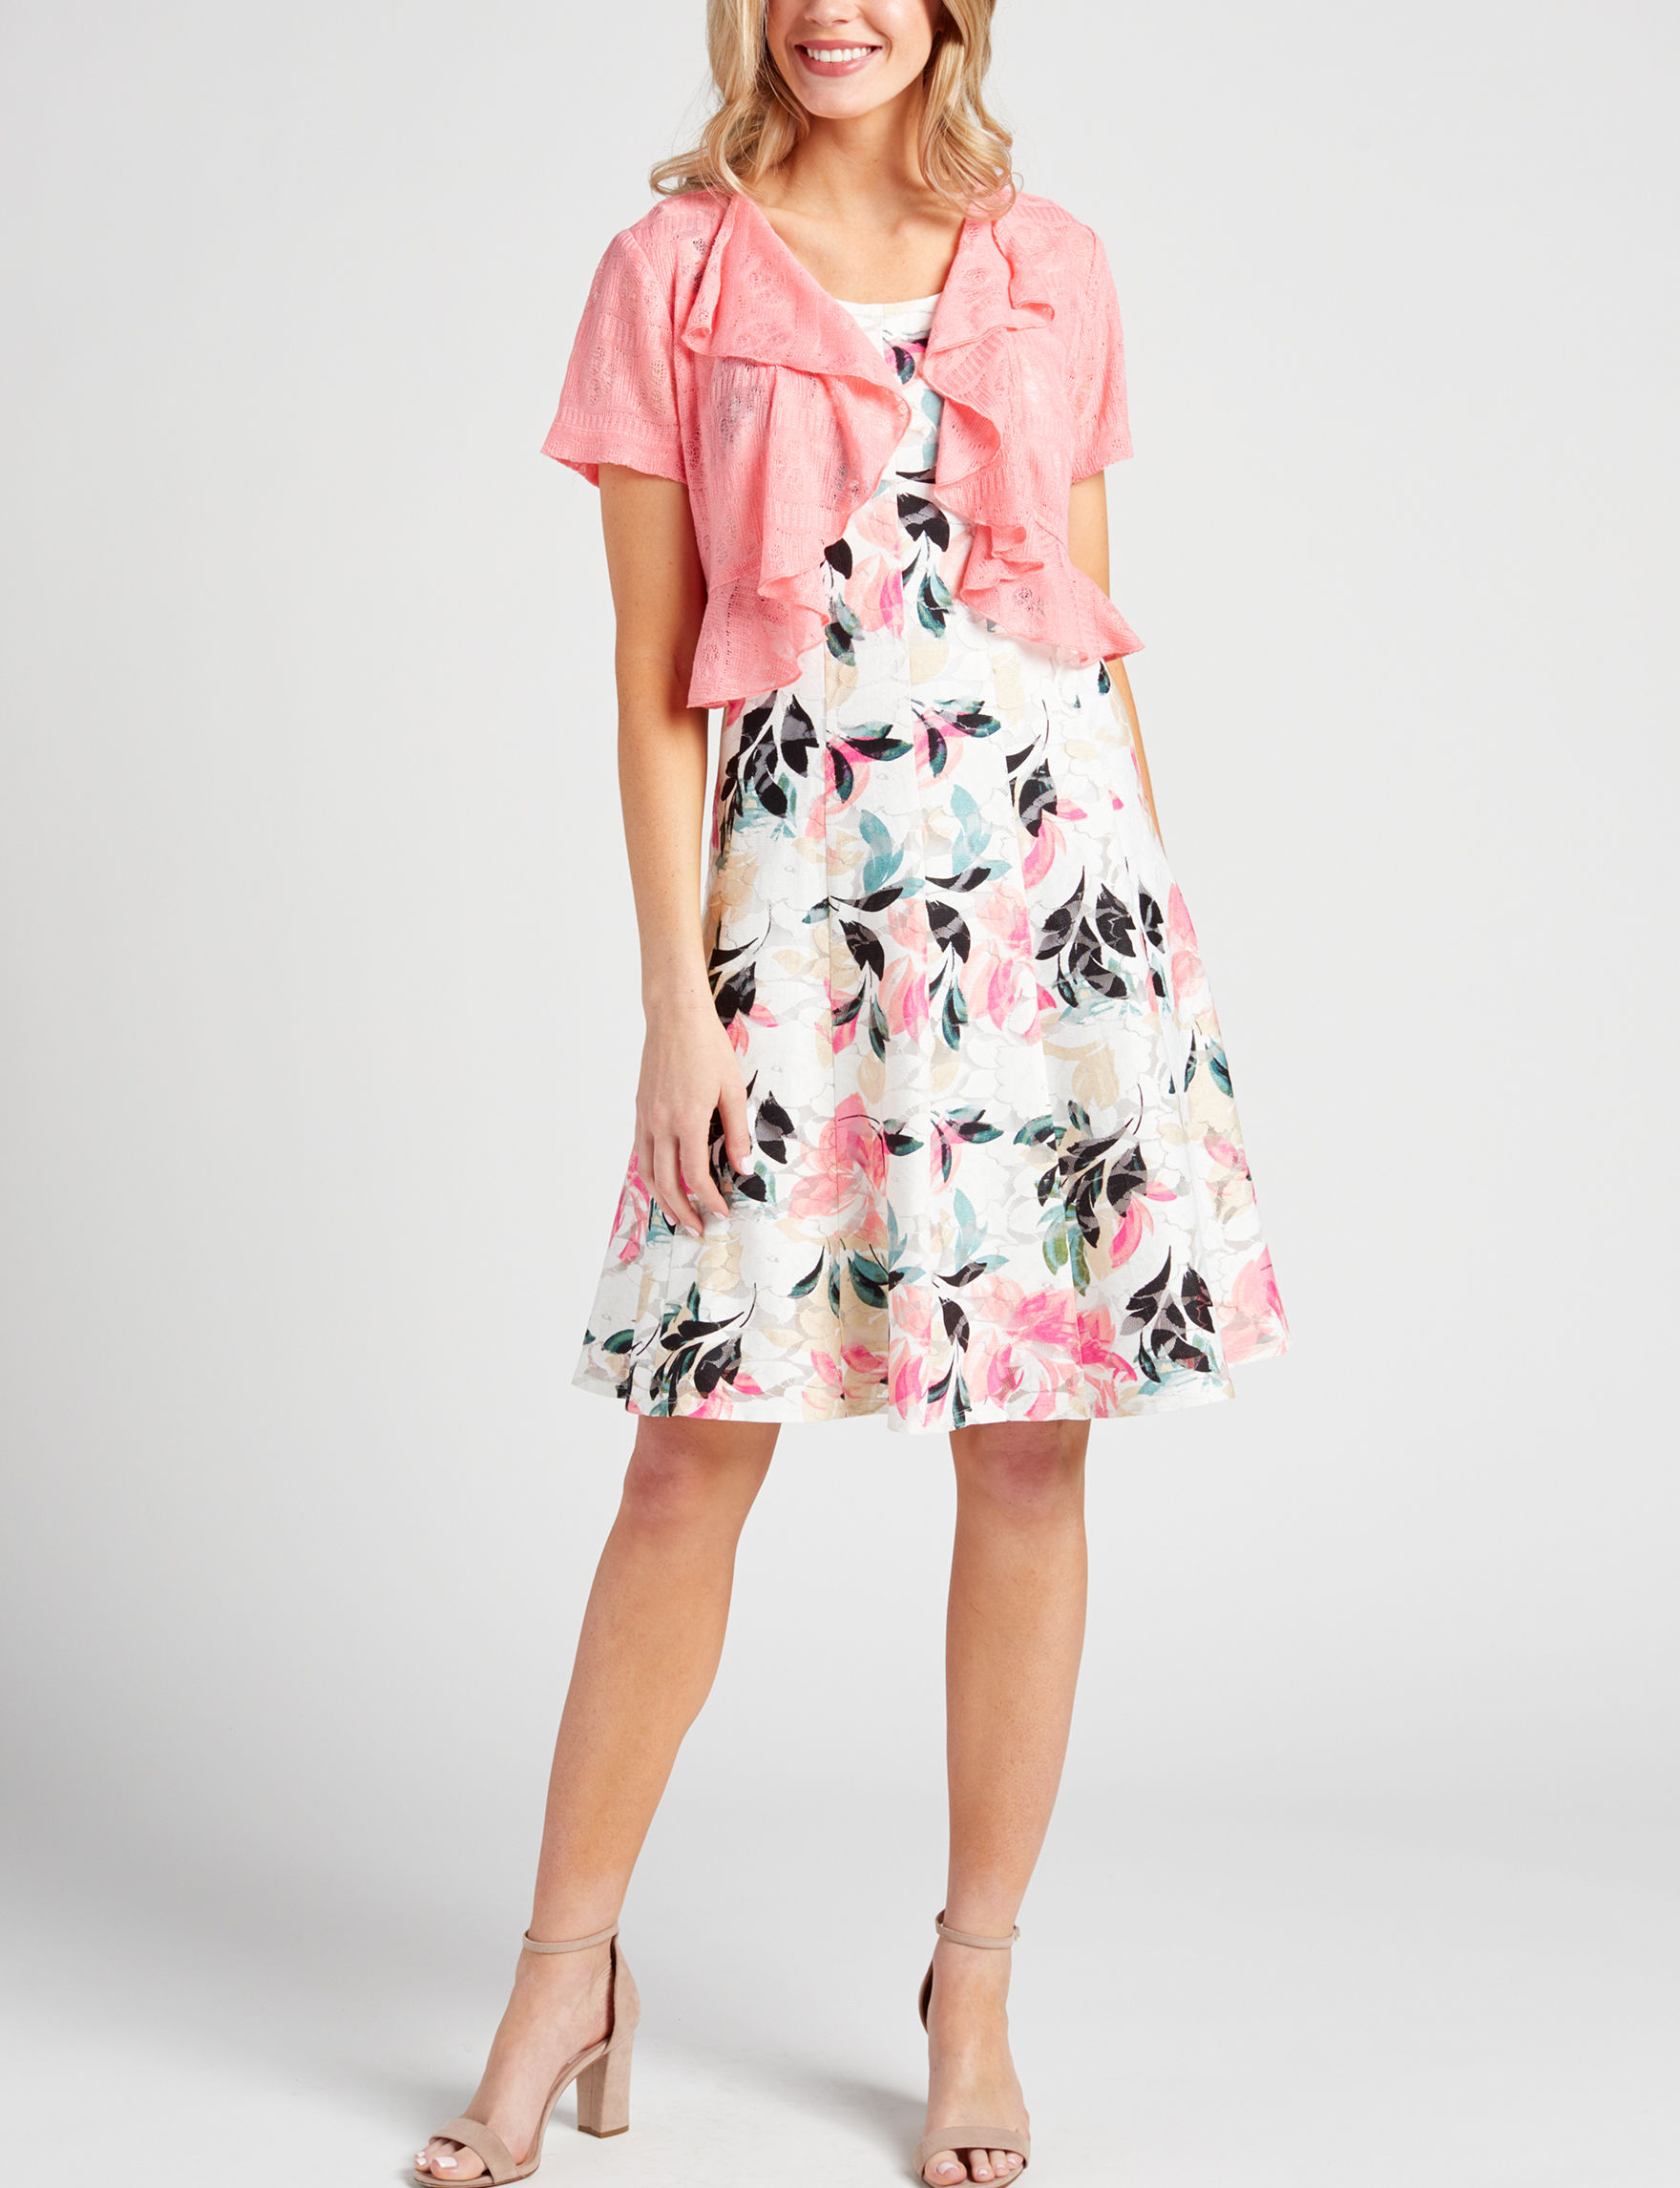 Perceptions White Floral Everyday & Casual Jacket Dresses Sheath Dresses